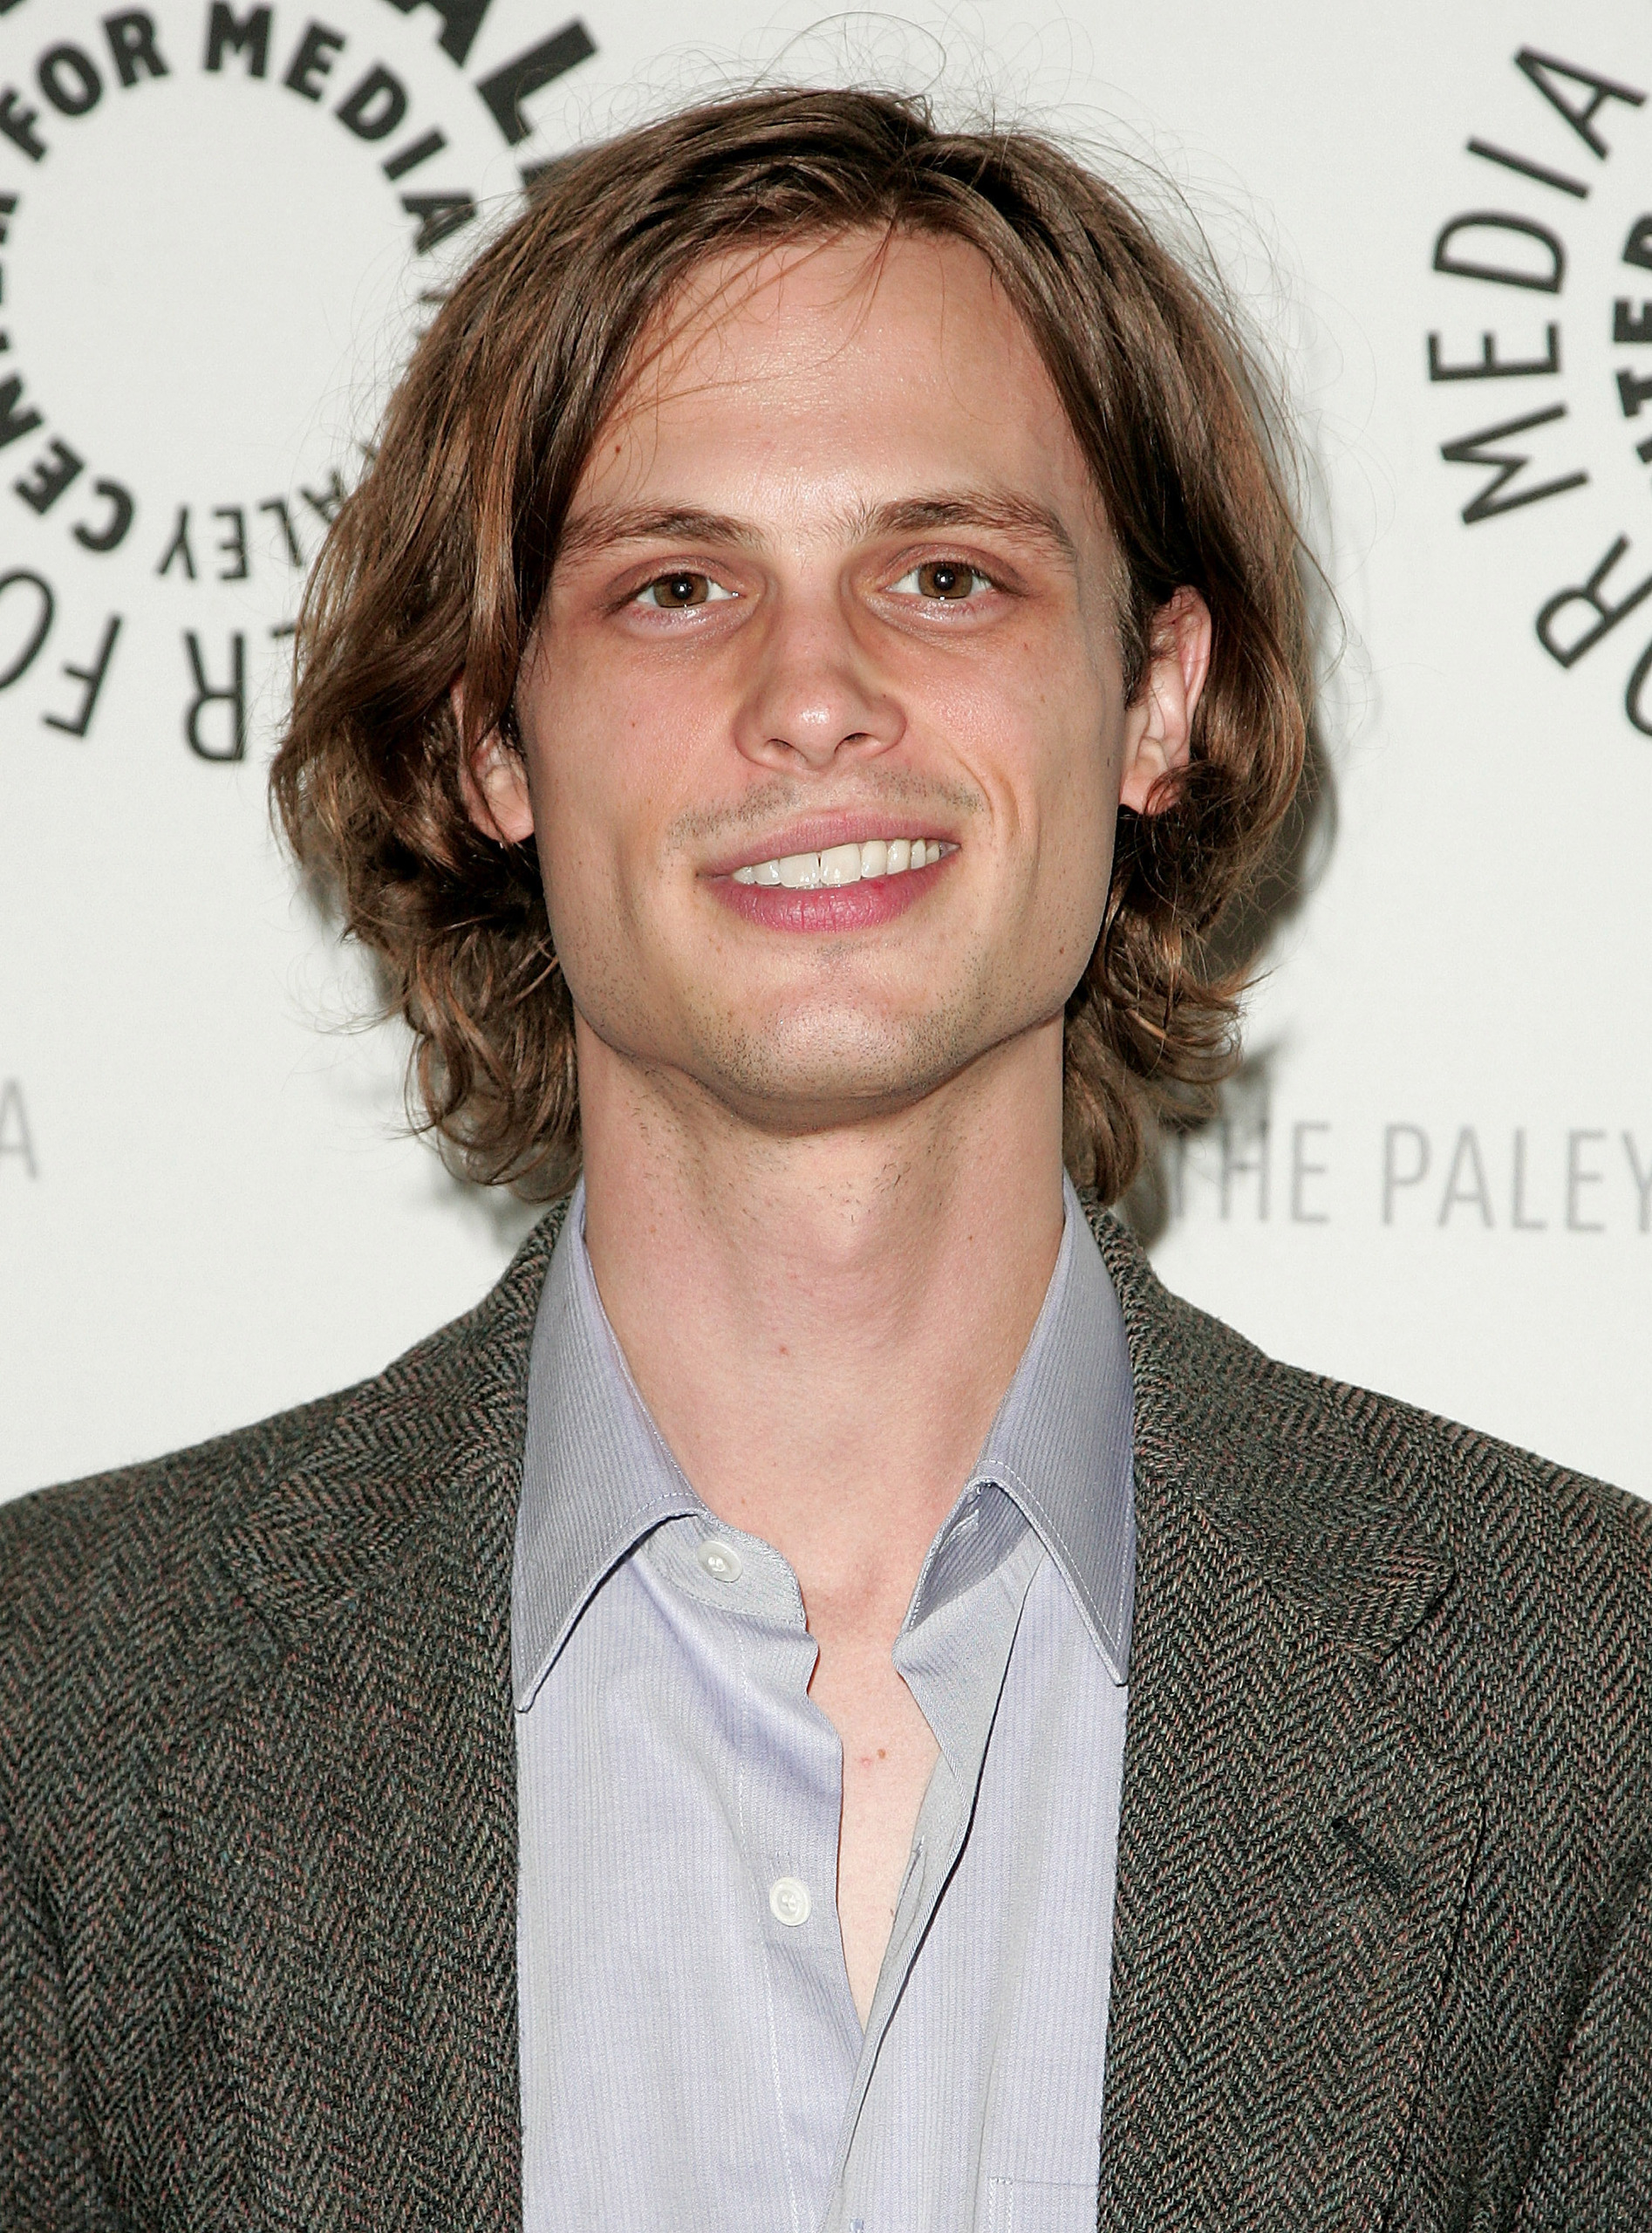 Spencer Reid Criminal Minds Wallpaper